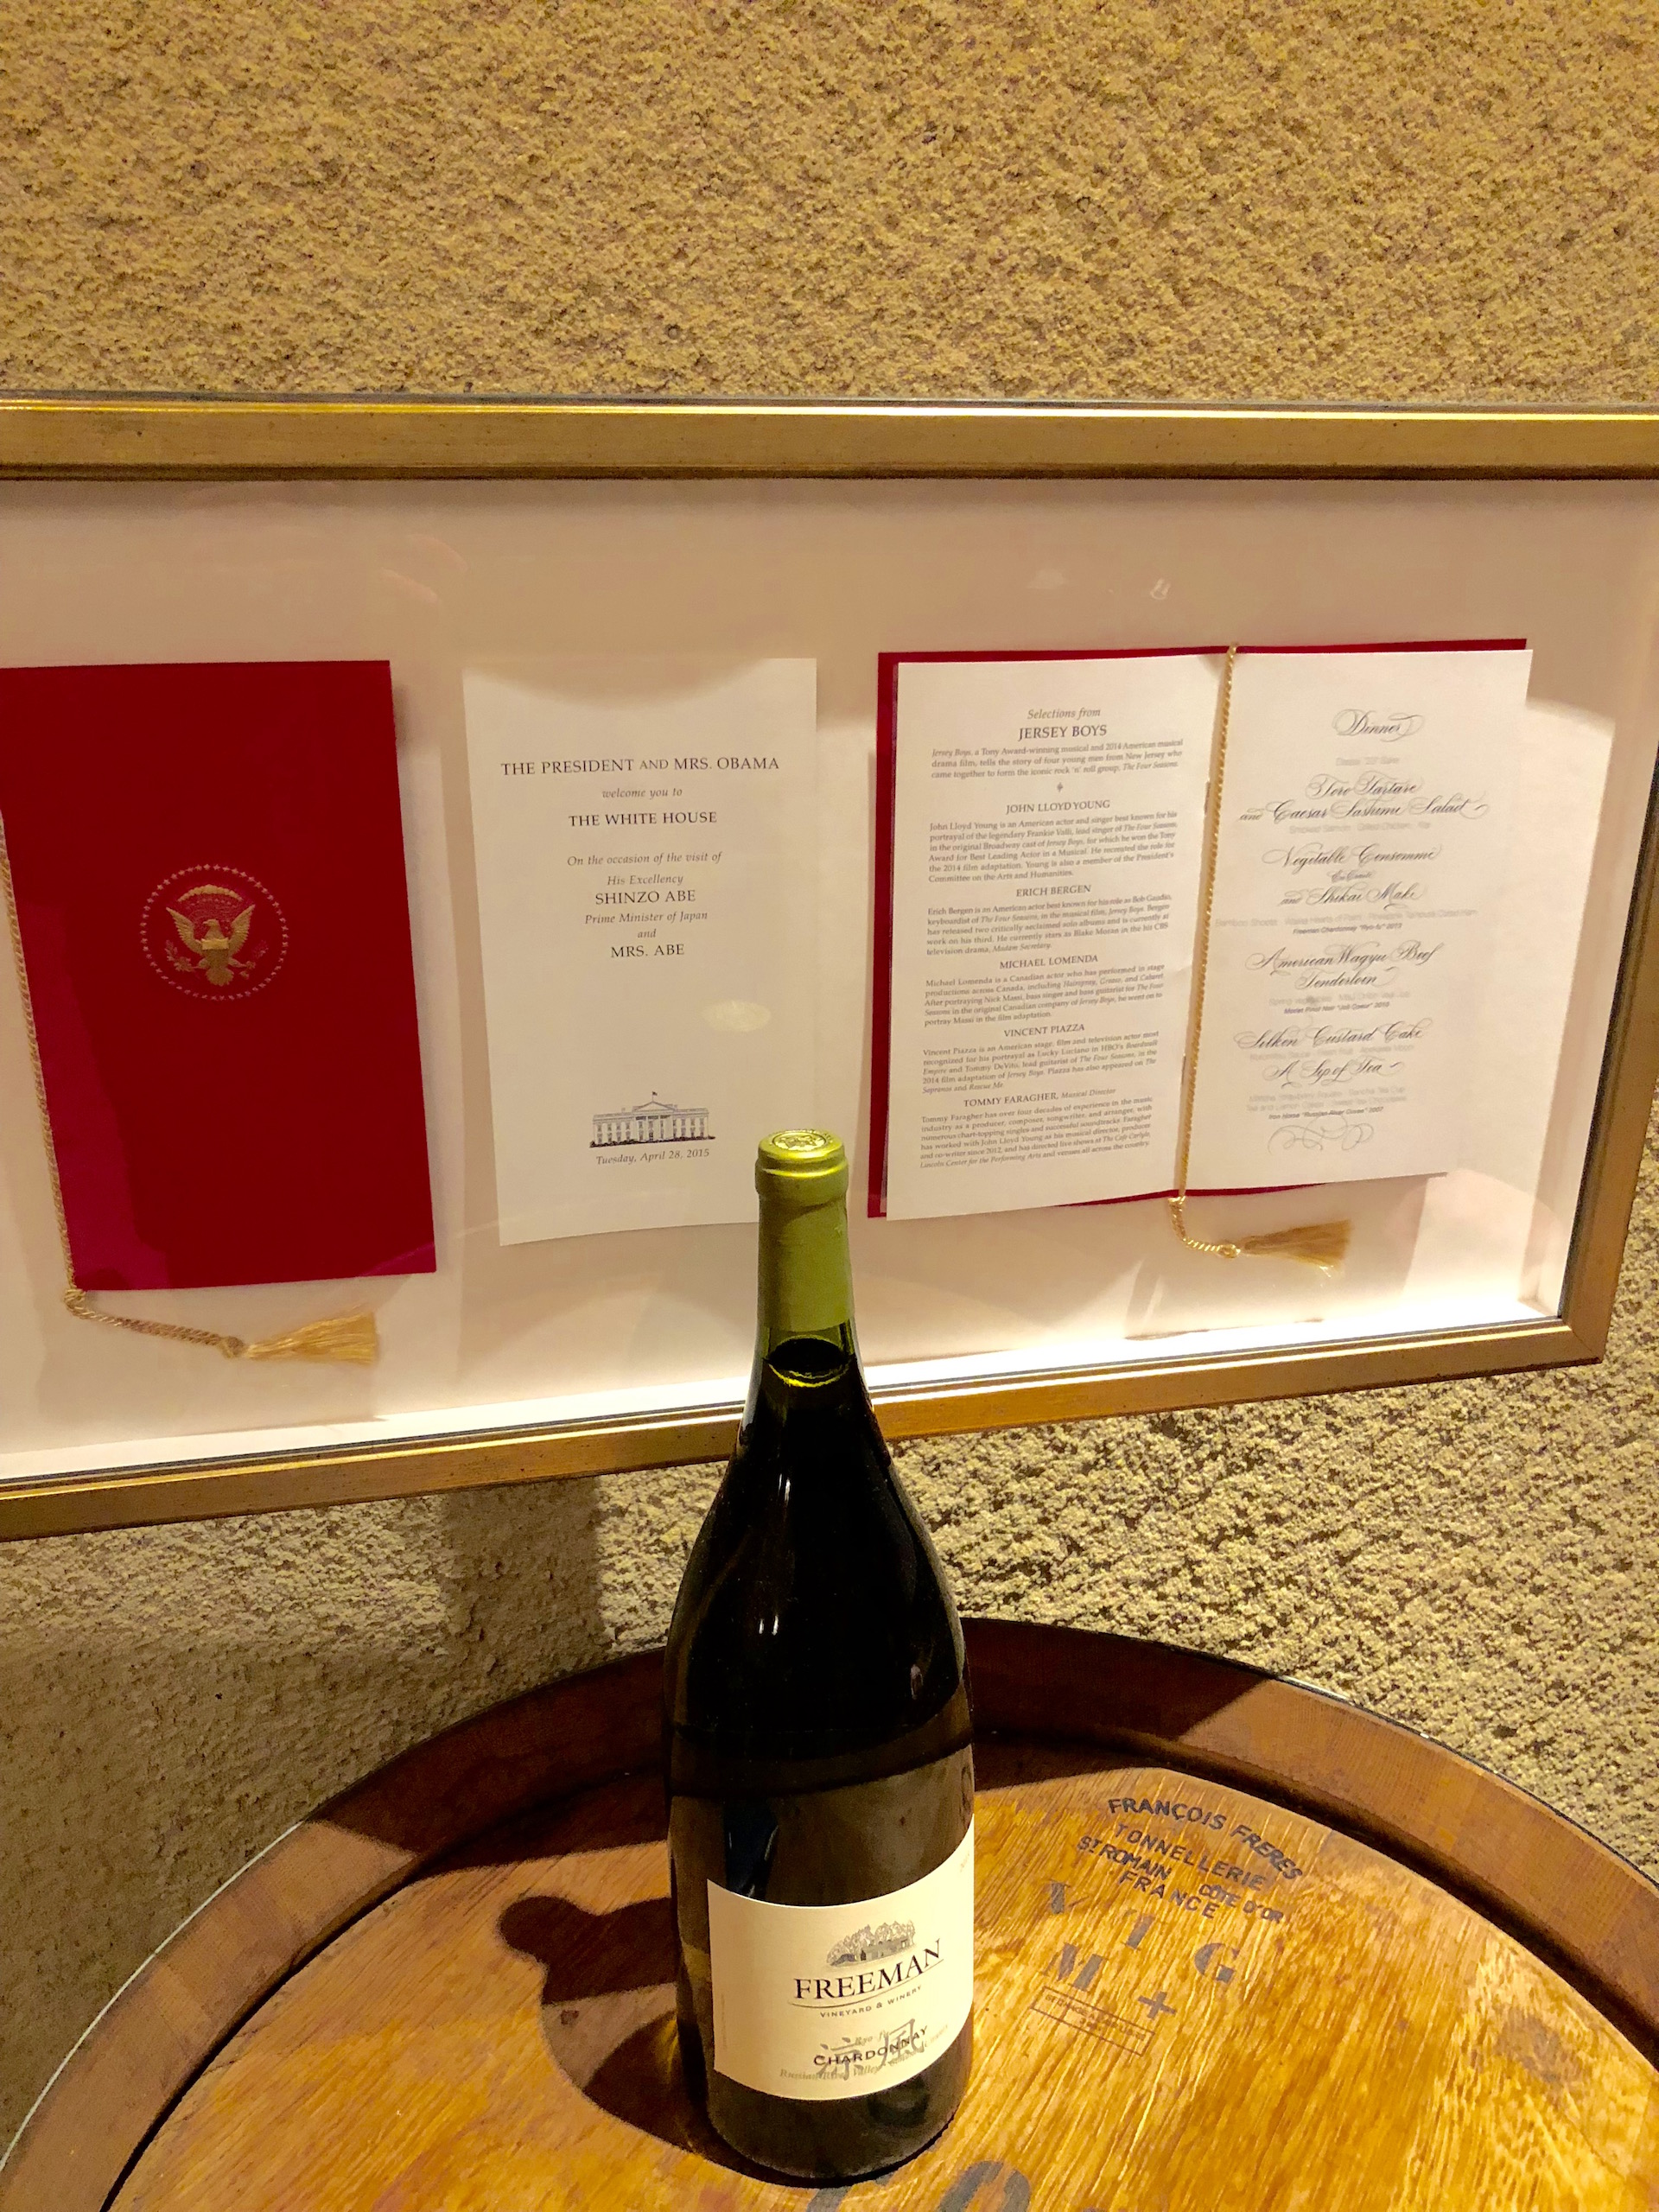 A copy of the entertainment program and menu from the 2015 White House dinner hosted by President Obama for Japanese Prime Minister Shinzo Abe, where Freeman Winery's Ryo-fu Chardonnay was served